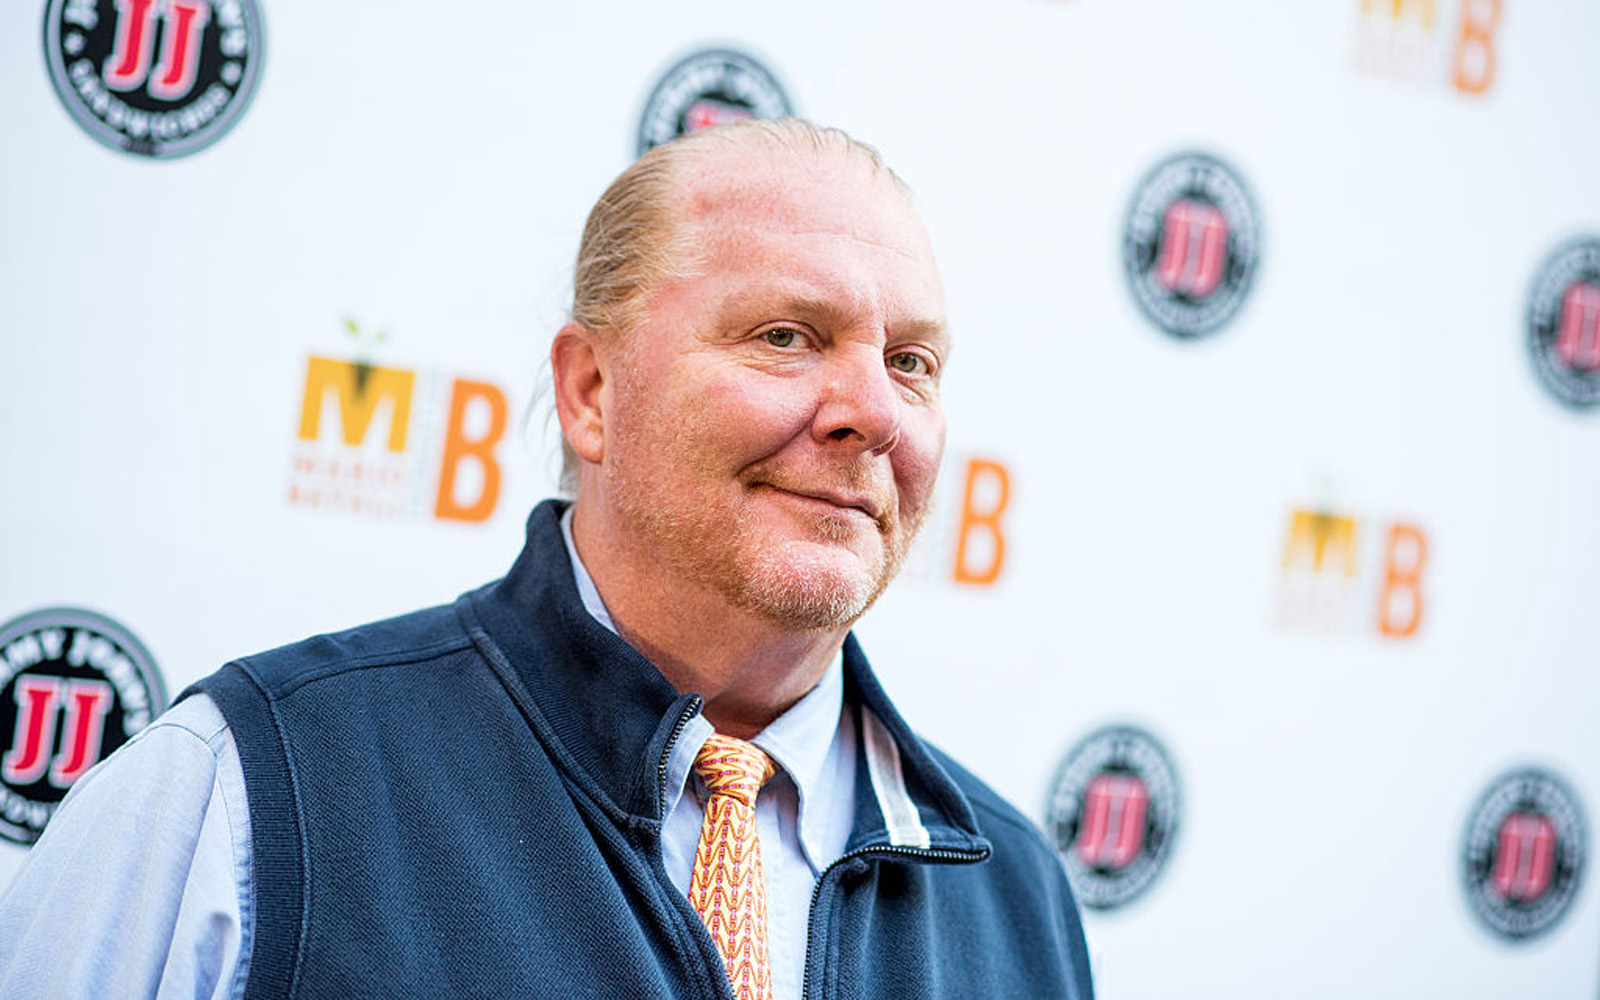 Mario Batali Steps Away From Restaurant Empire and 'The Chew' After Sexual Harassment Accusations